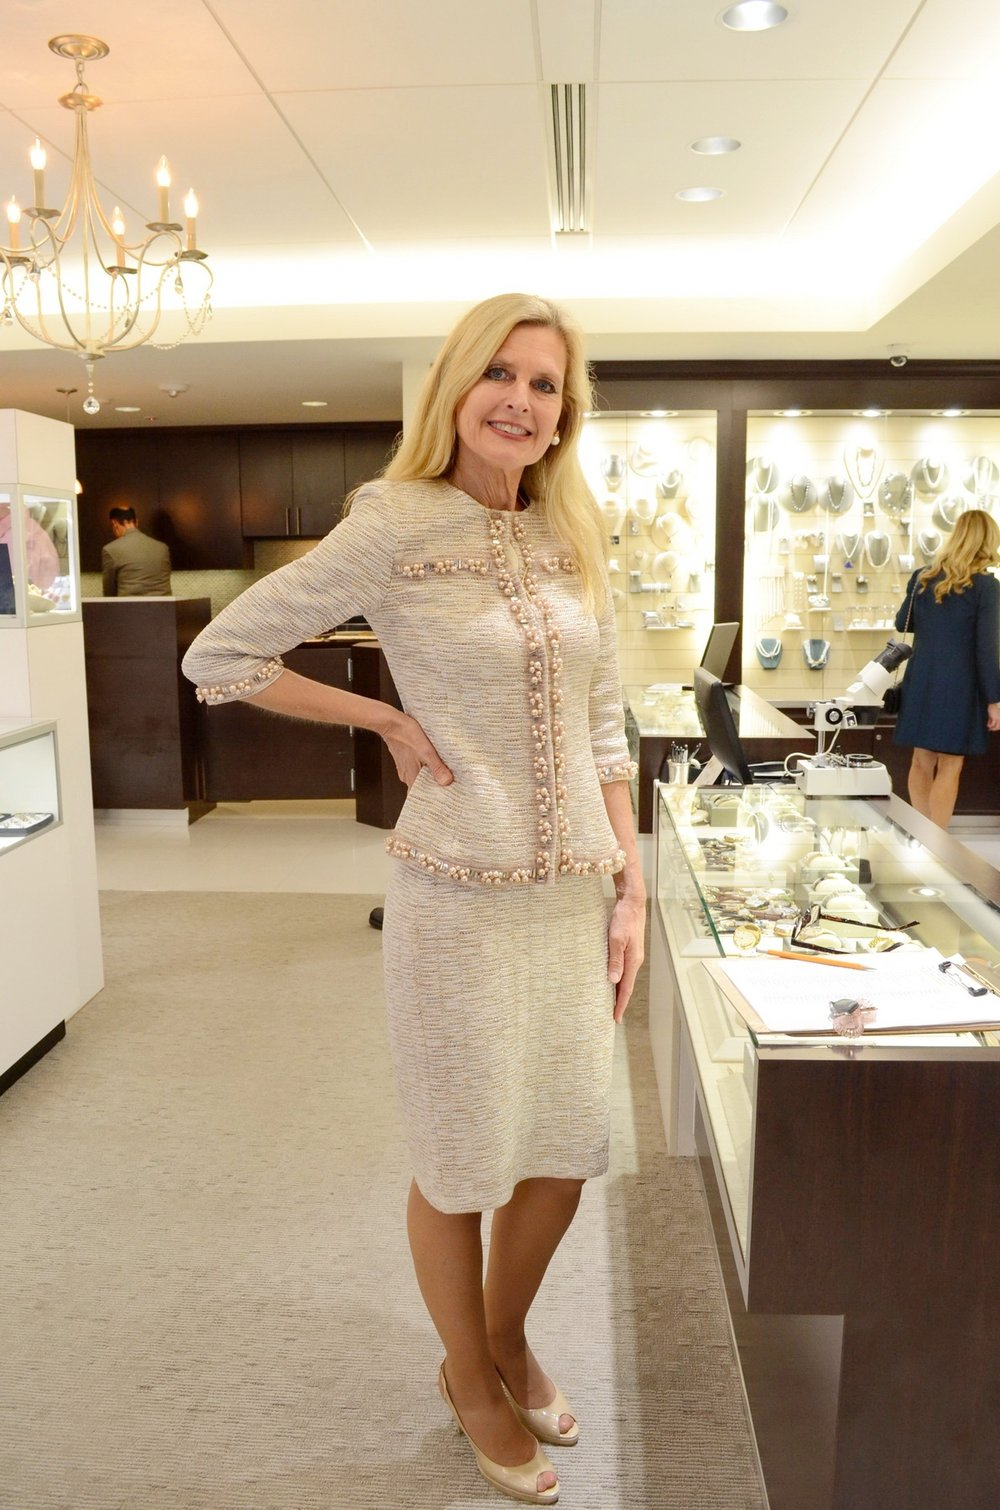 A suit trimmed in faux pearls looked so right at the jewelry sale event.